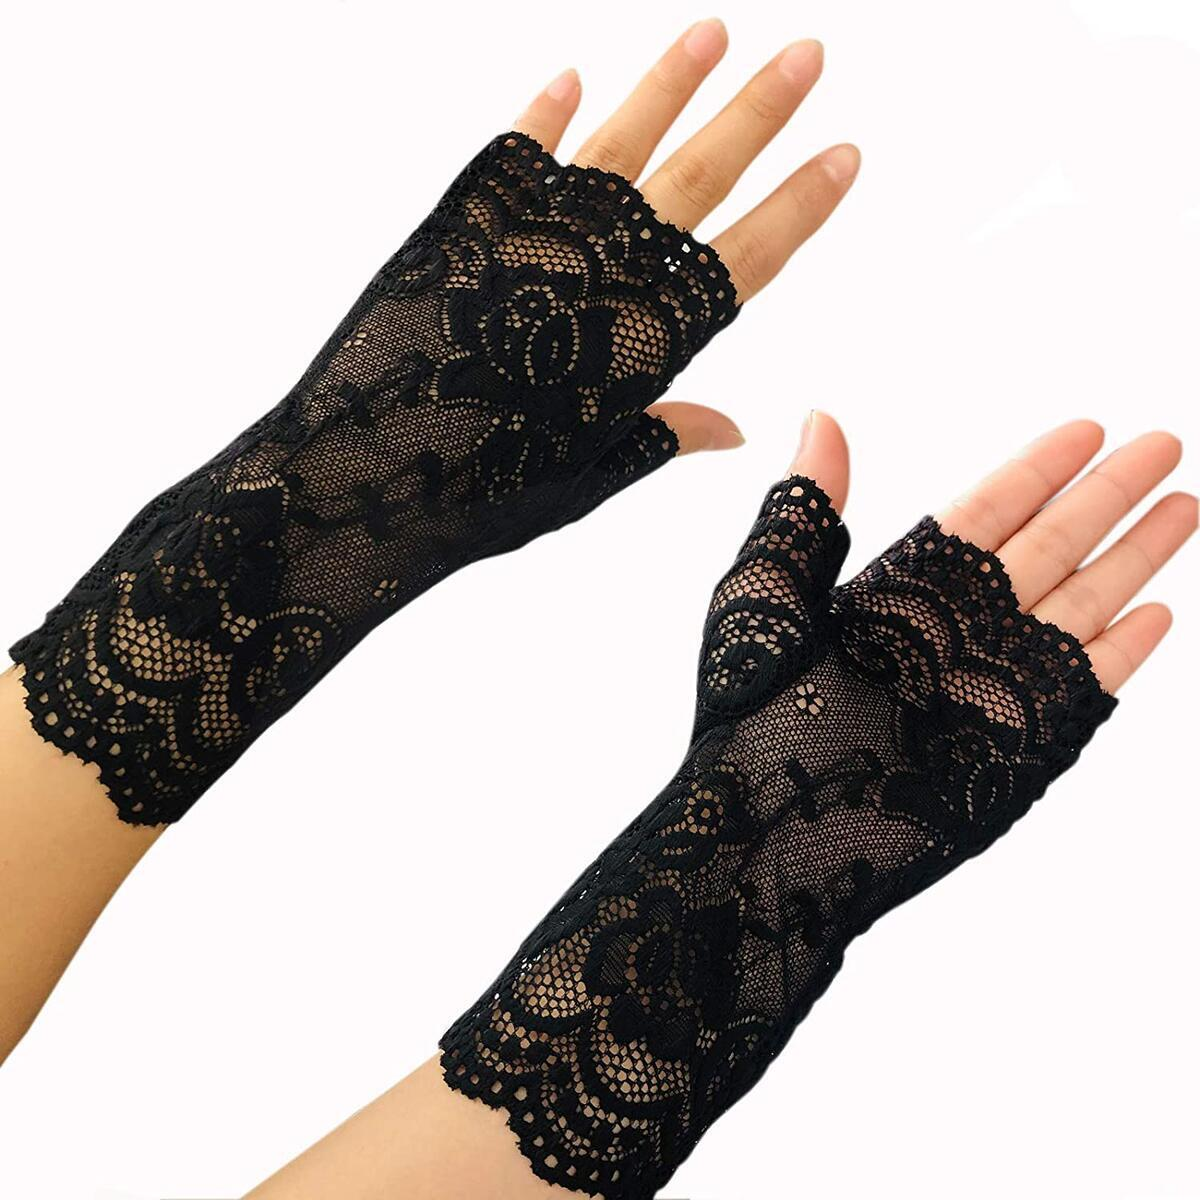 OPERA LENGTH FLOWER PATTERN WOMEN/'S LACE GLOVES VARIOUS COLORS